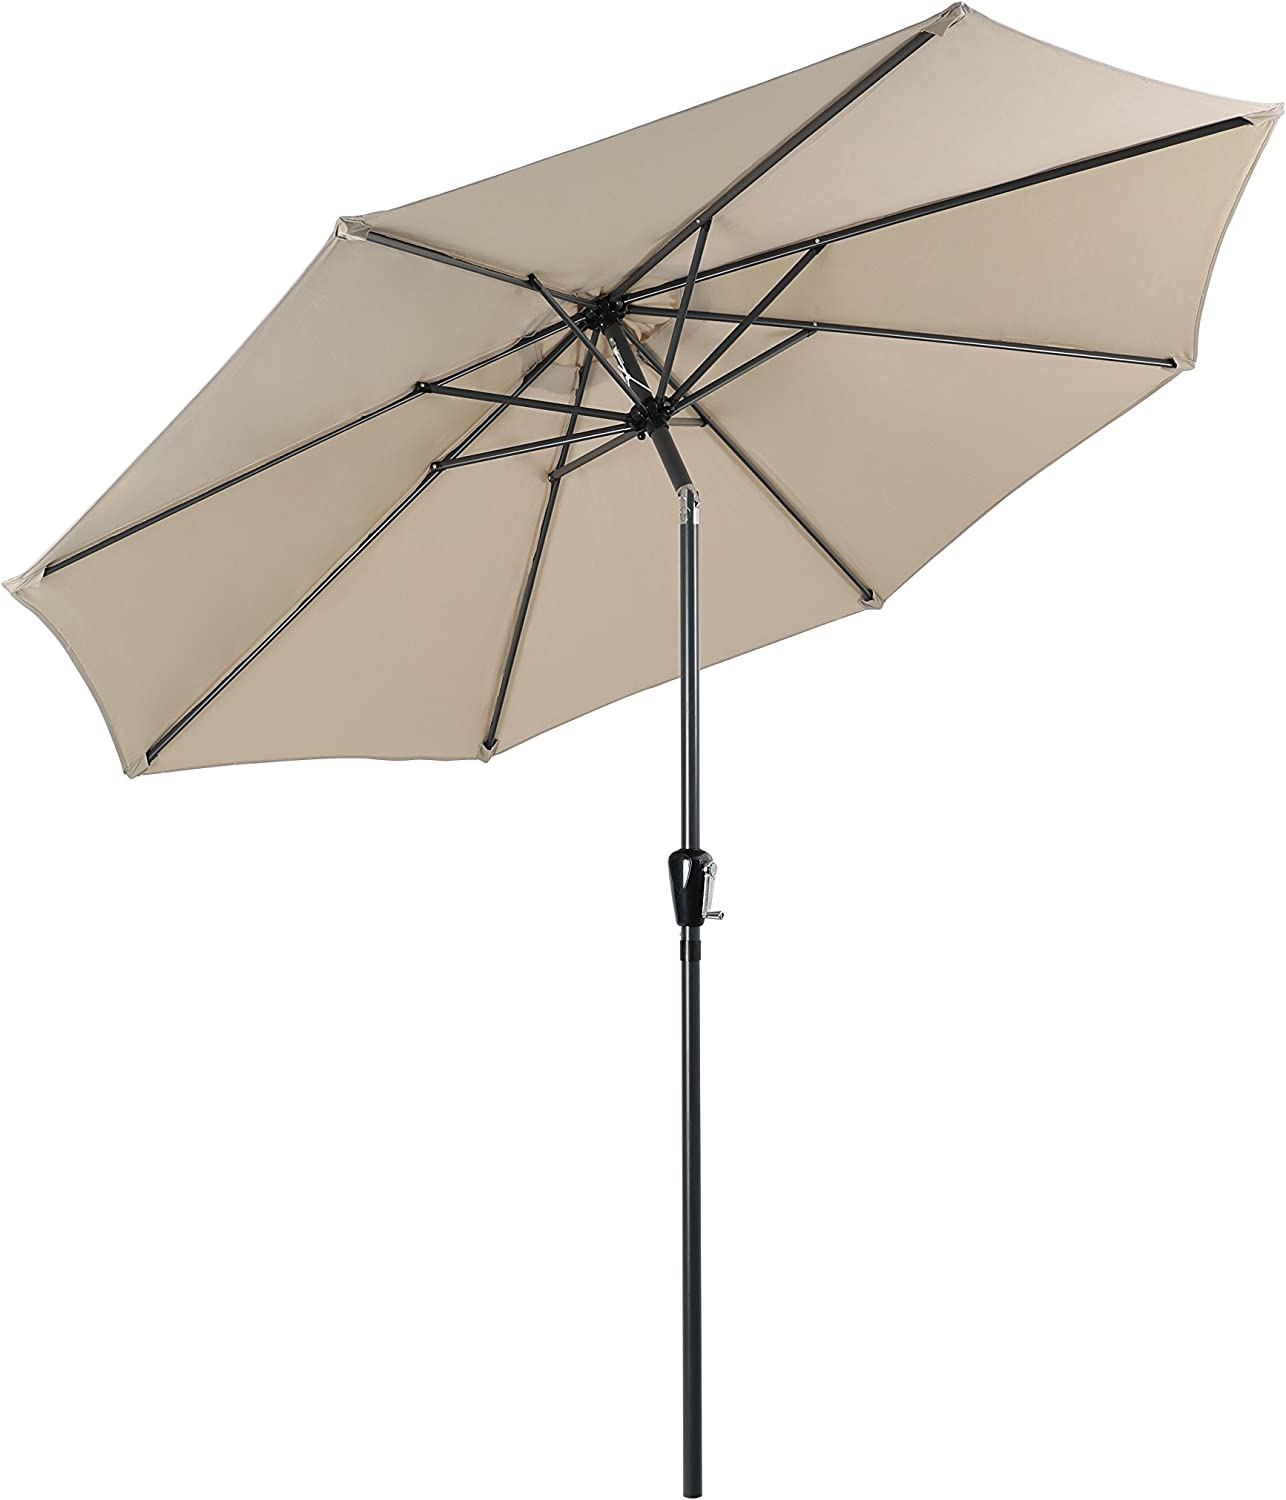 PHI VILLA 9 FT Patio Umbrella Push Button Table Large-scale Price reduction sale Ti with